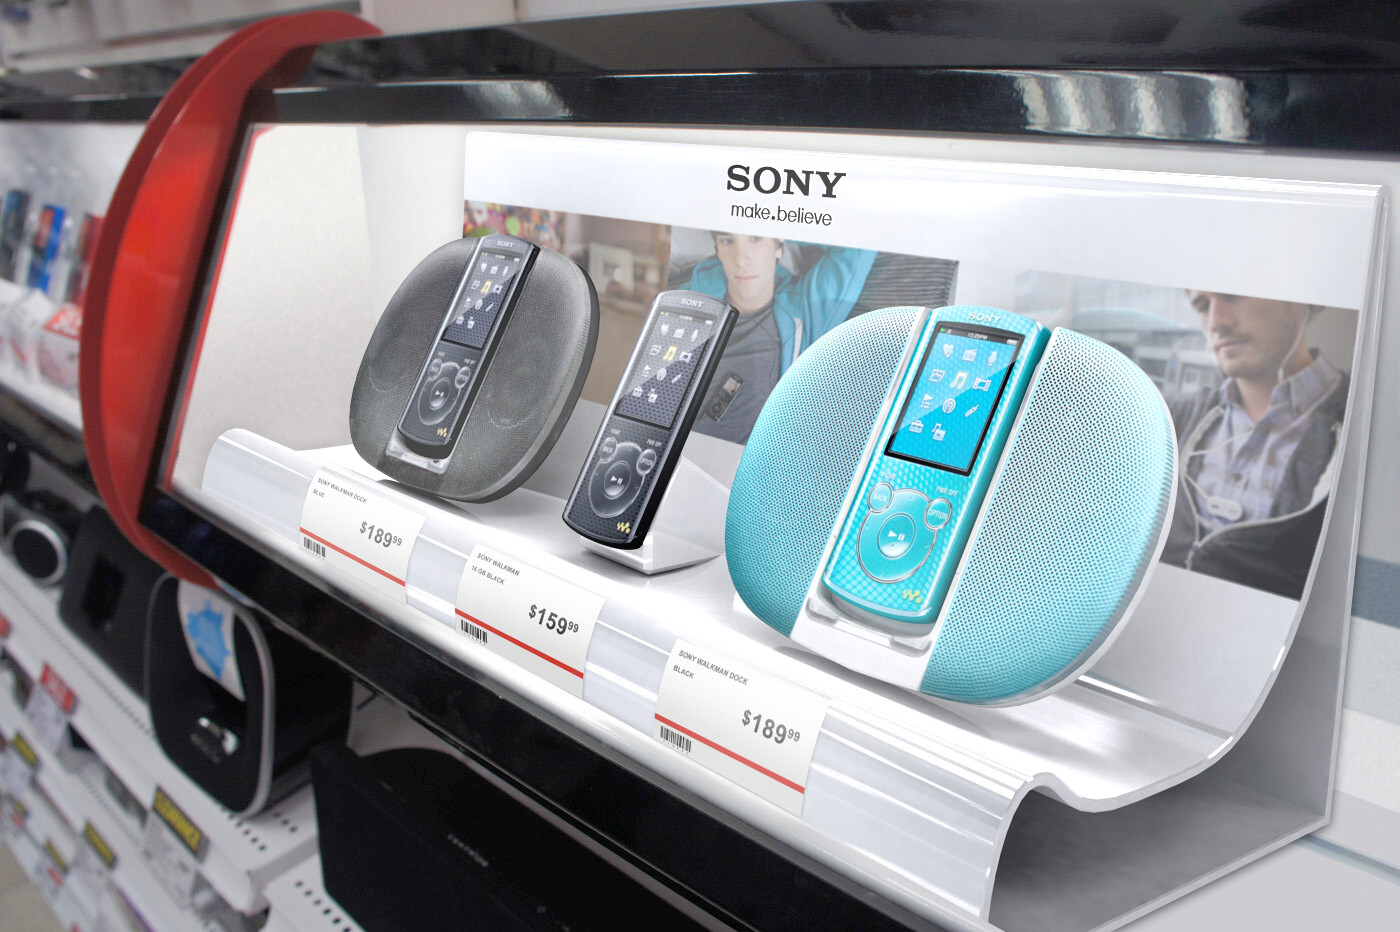 Sony Personal Audio In-Store Display for The Source